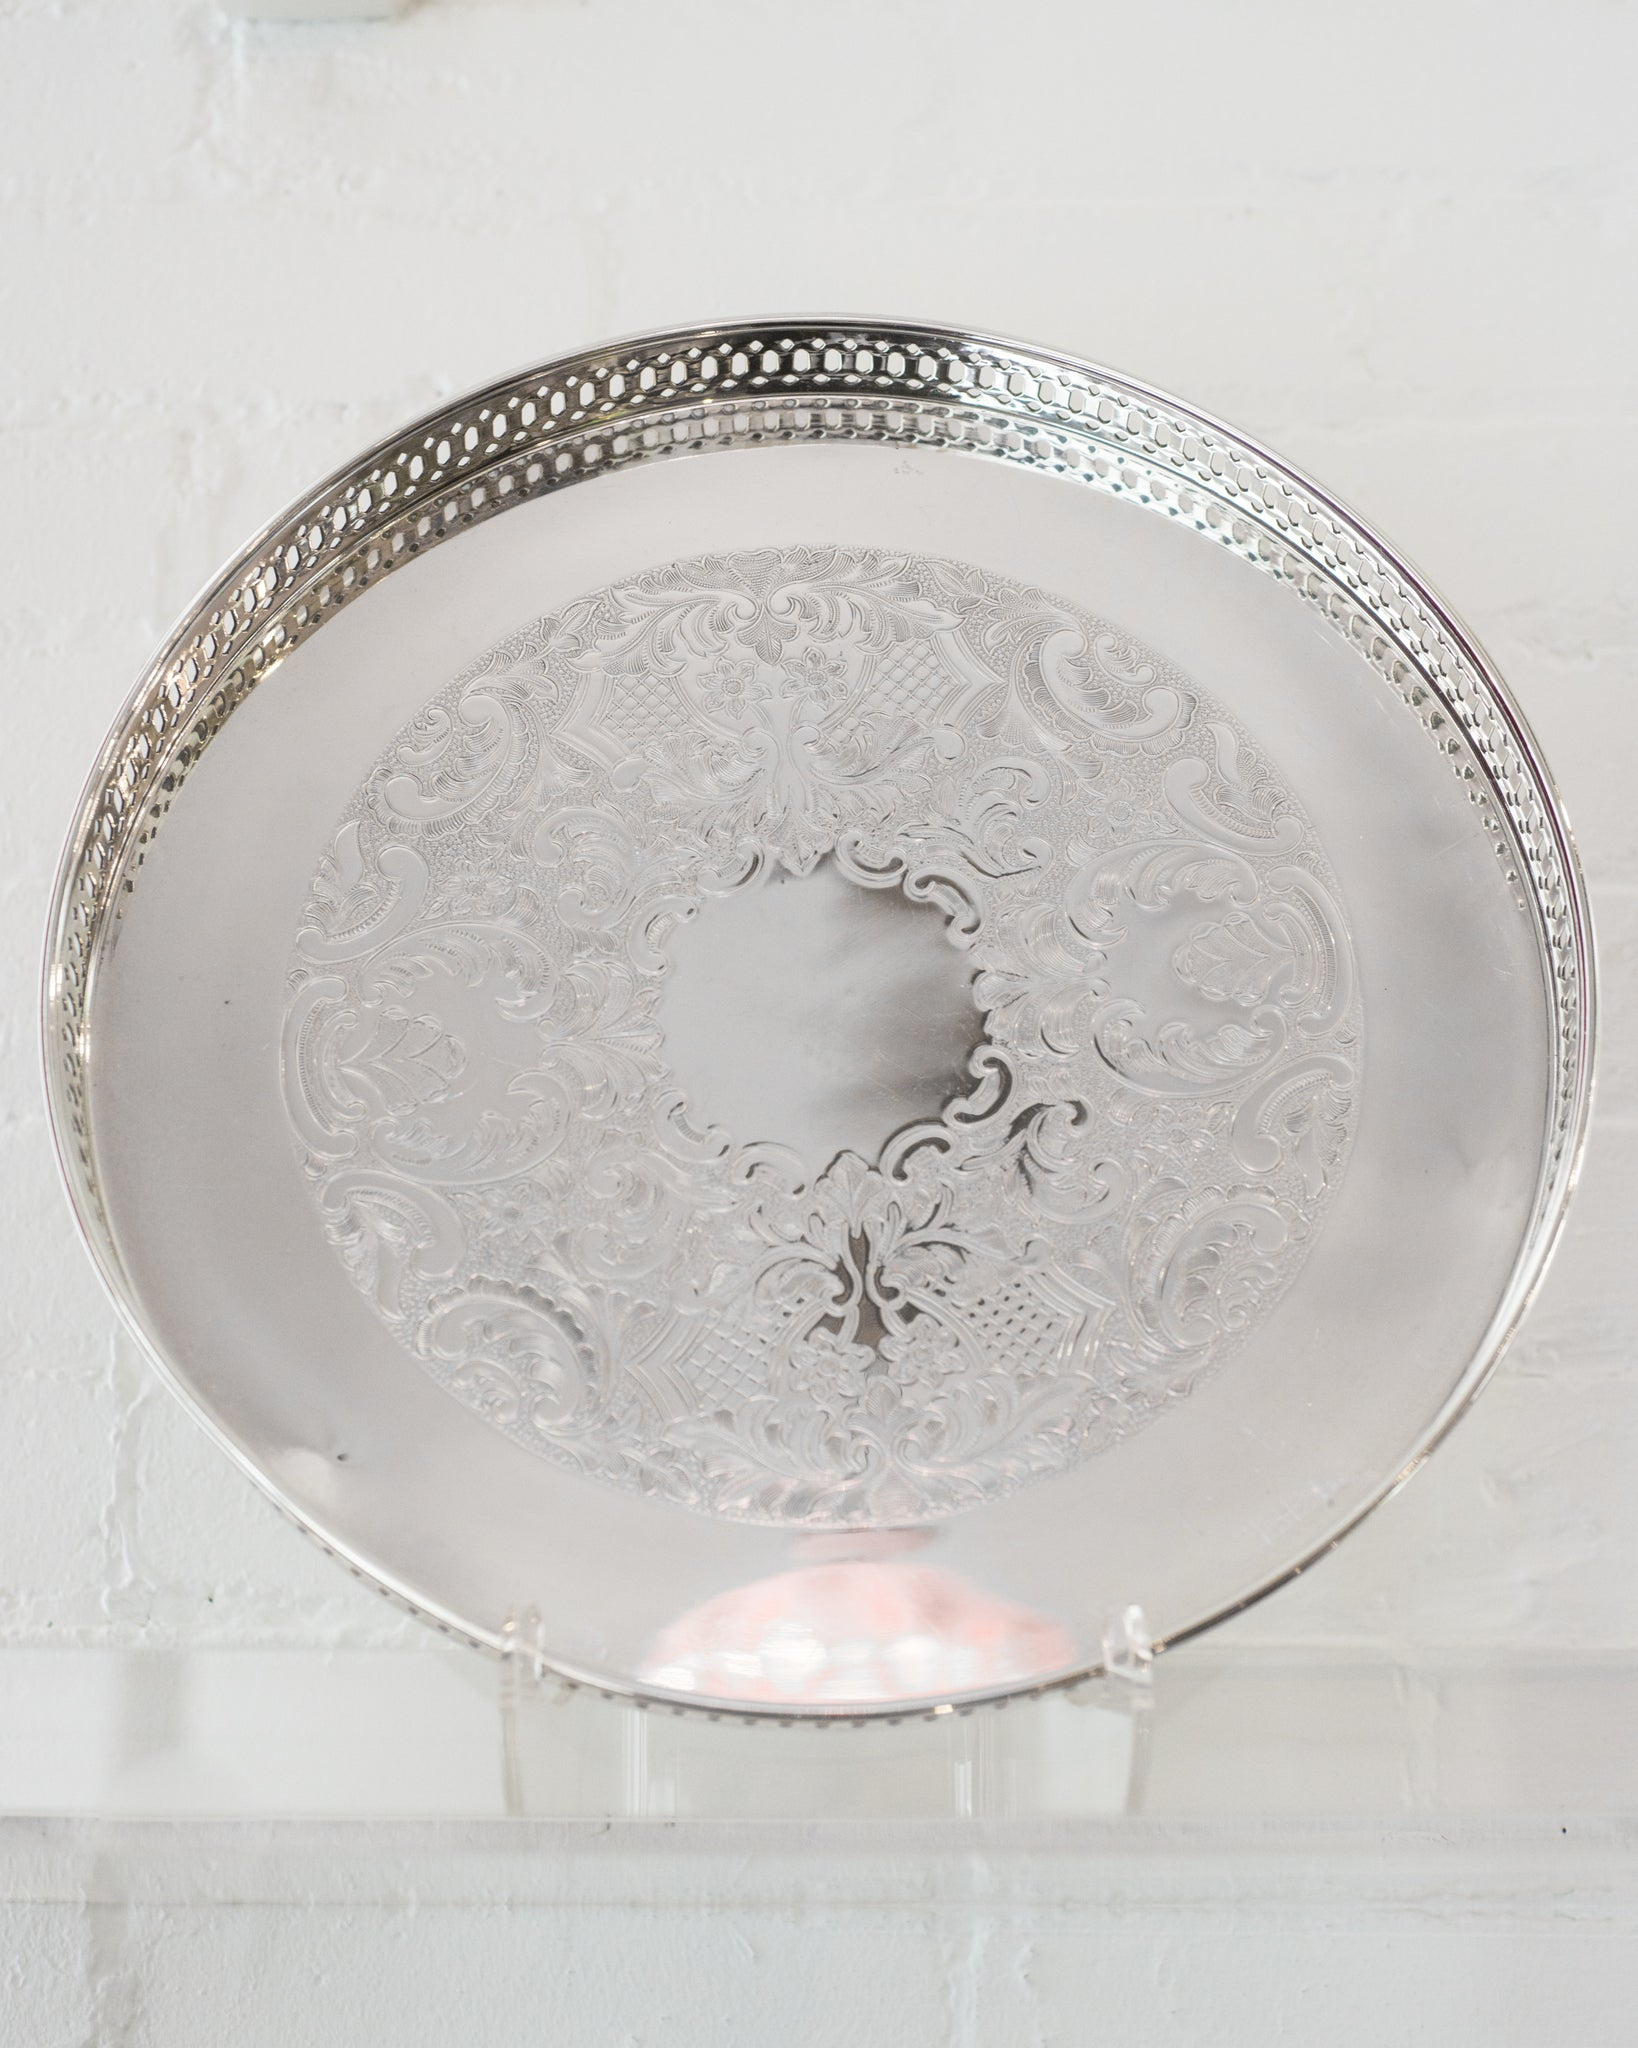 ANTIQUE SILVER PLATE TRAY WITH GALLERY